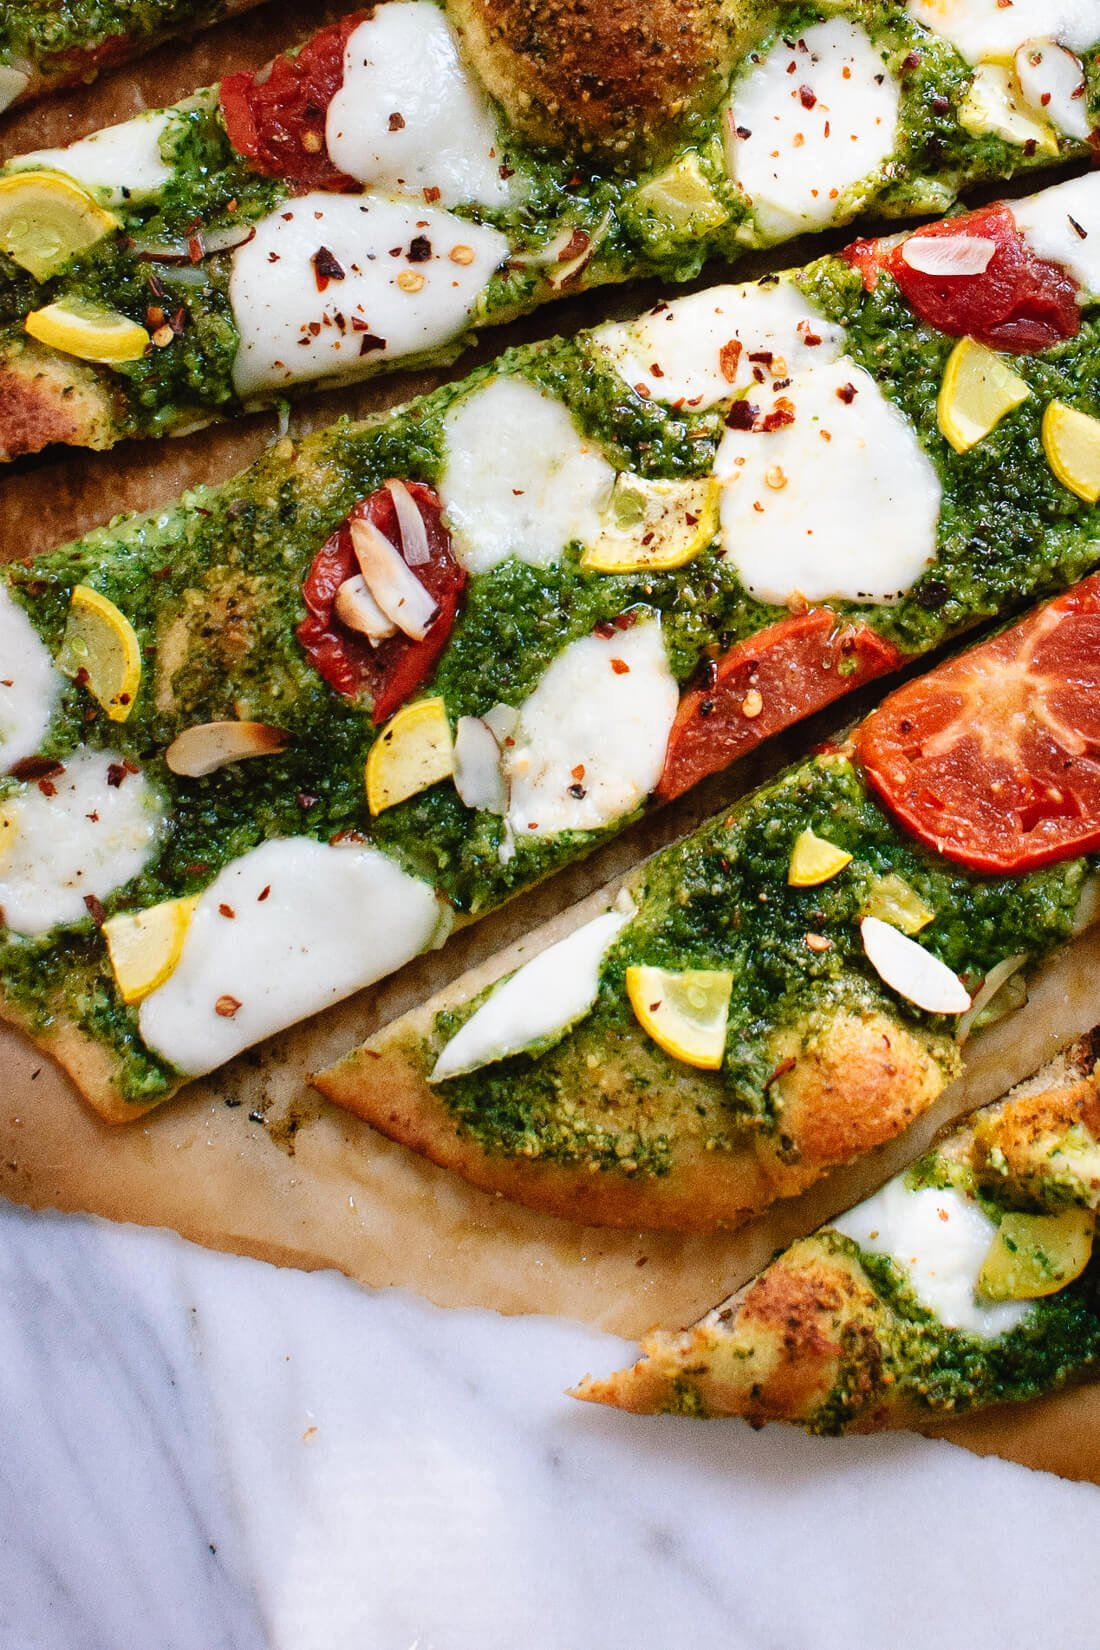 Homemade arugula-almond pesto pizza with a simple whole wheat crust